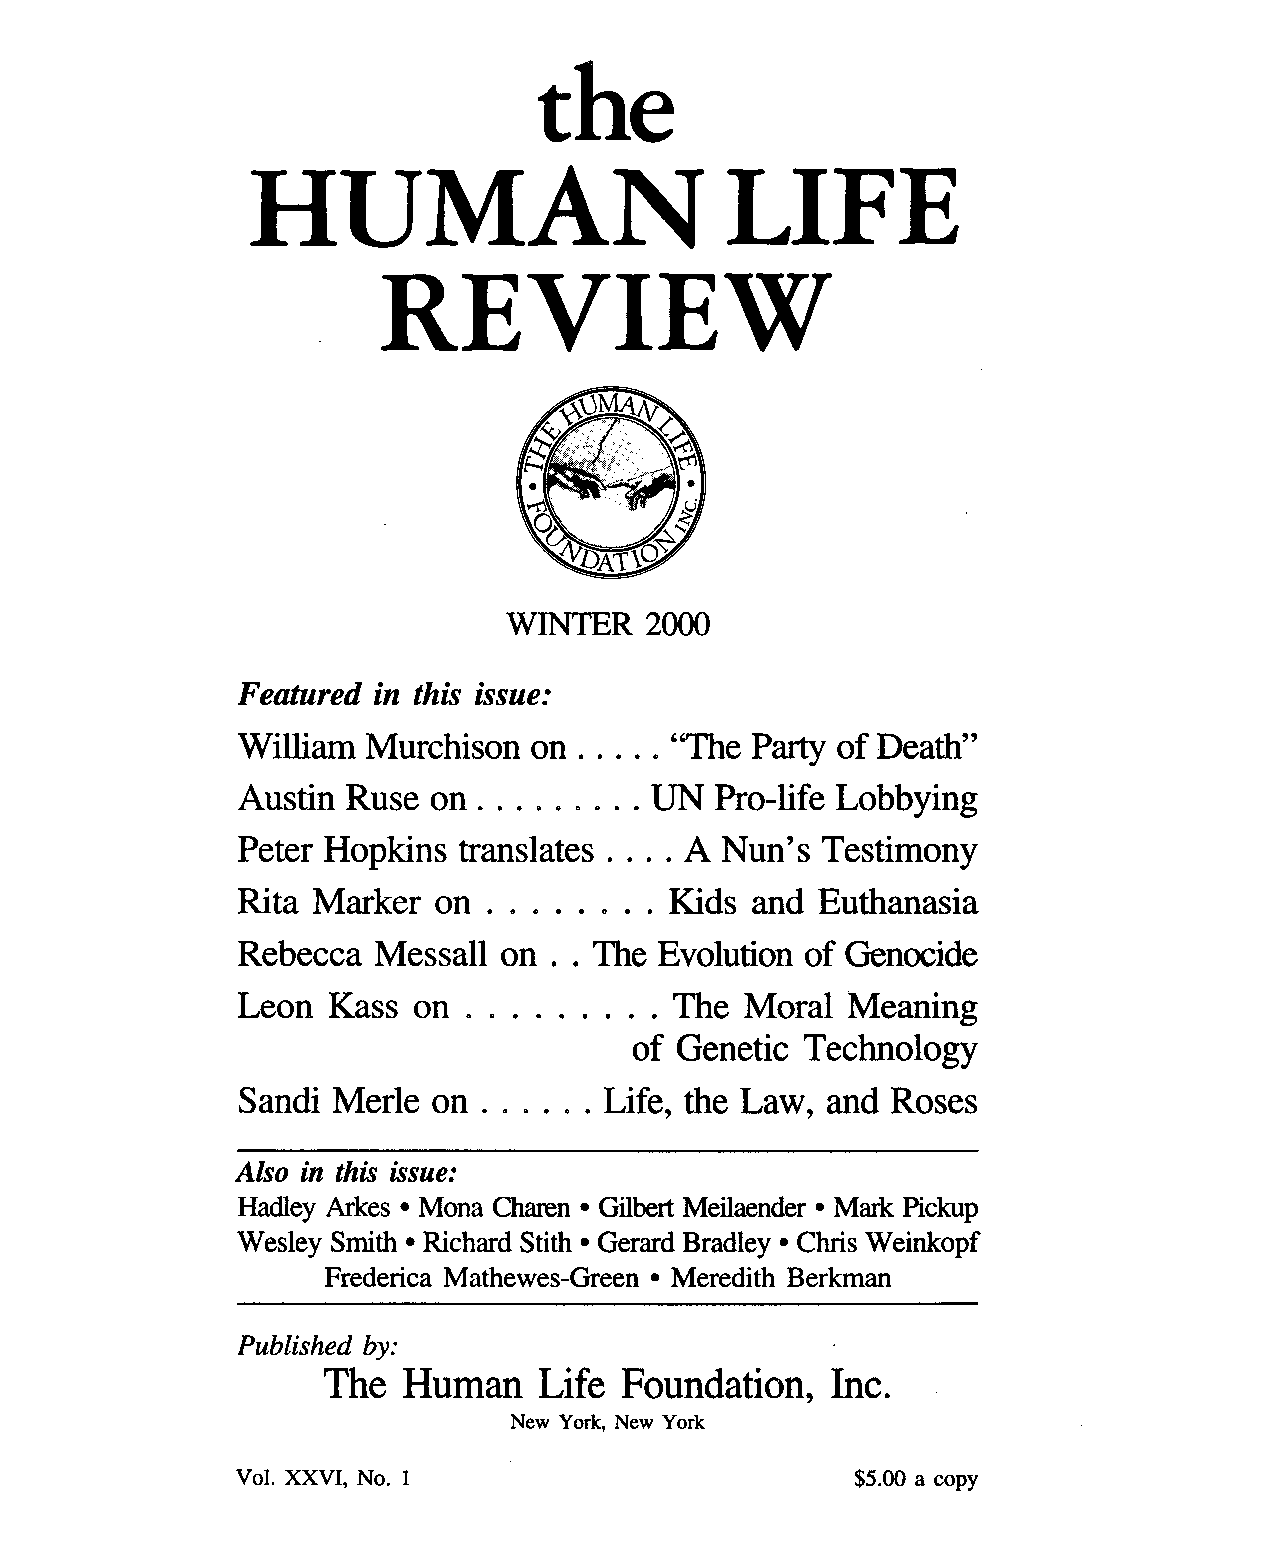 3b7390c11cf4ea The Human Life Review Winter 2000 - The Human Life Review